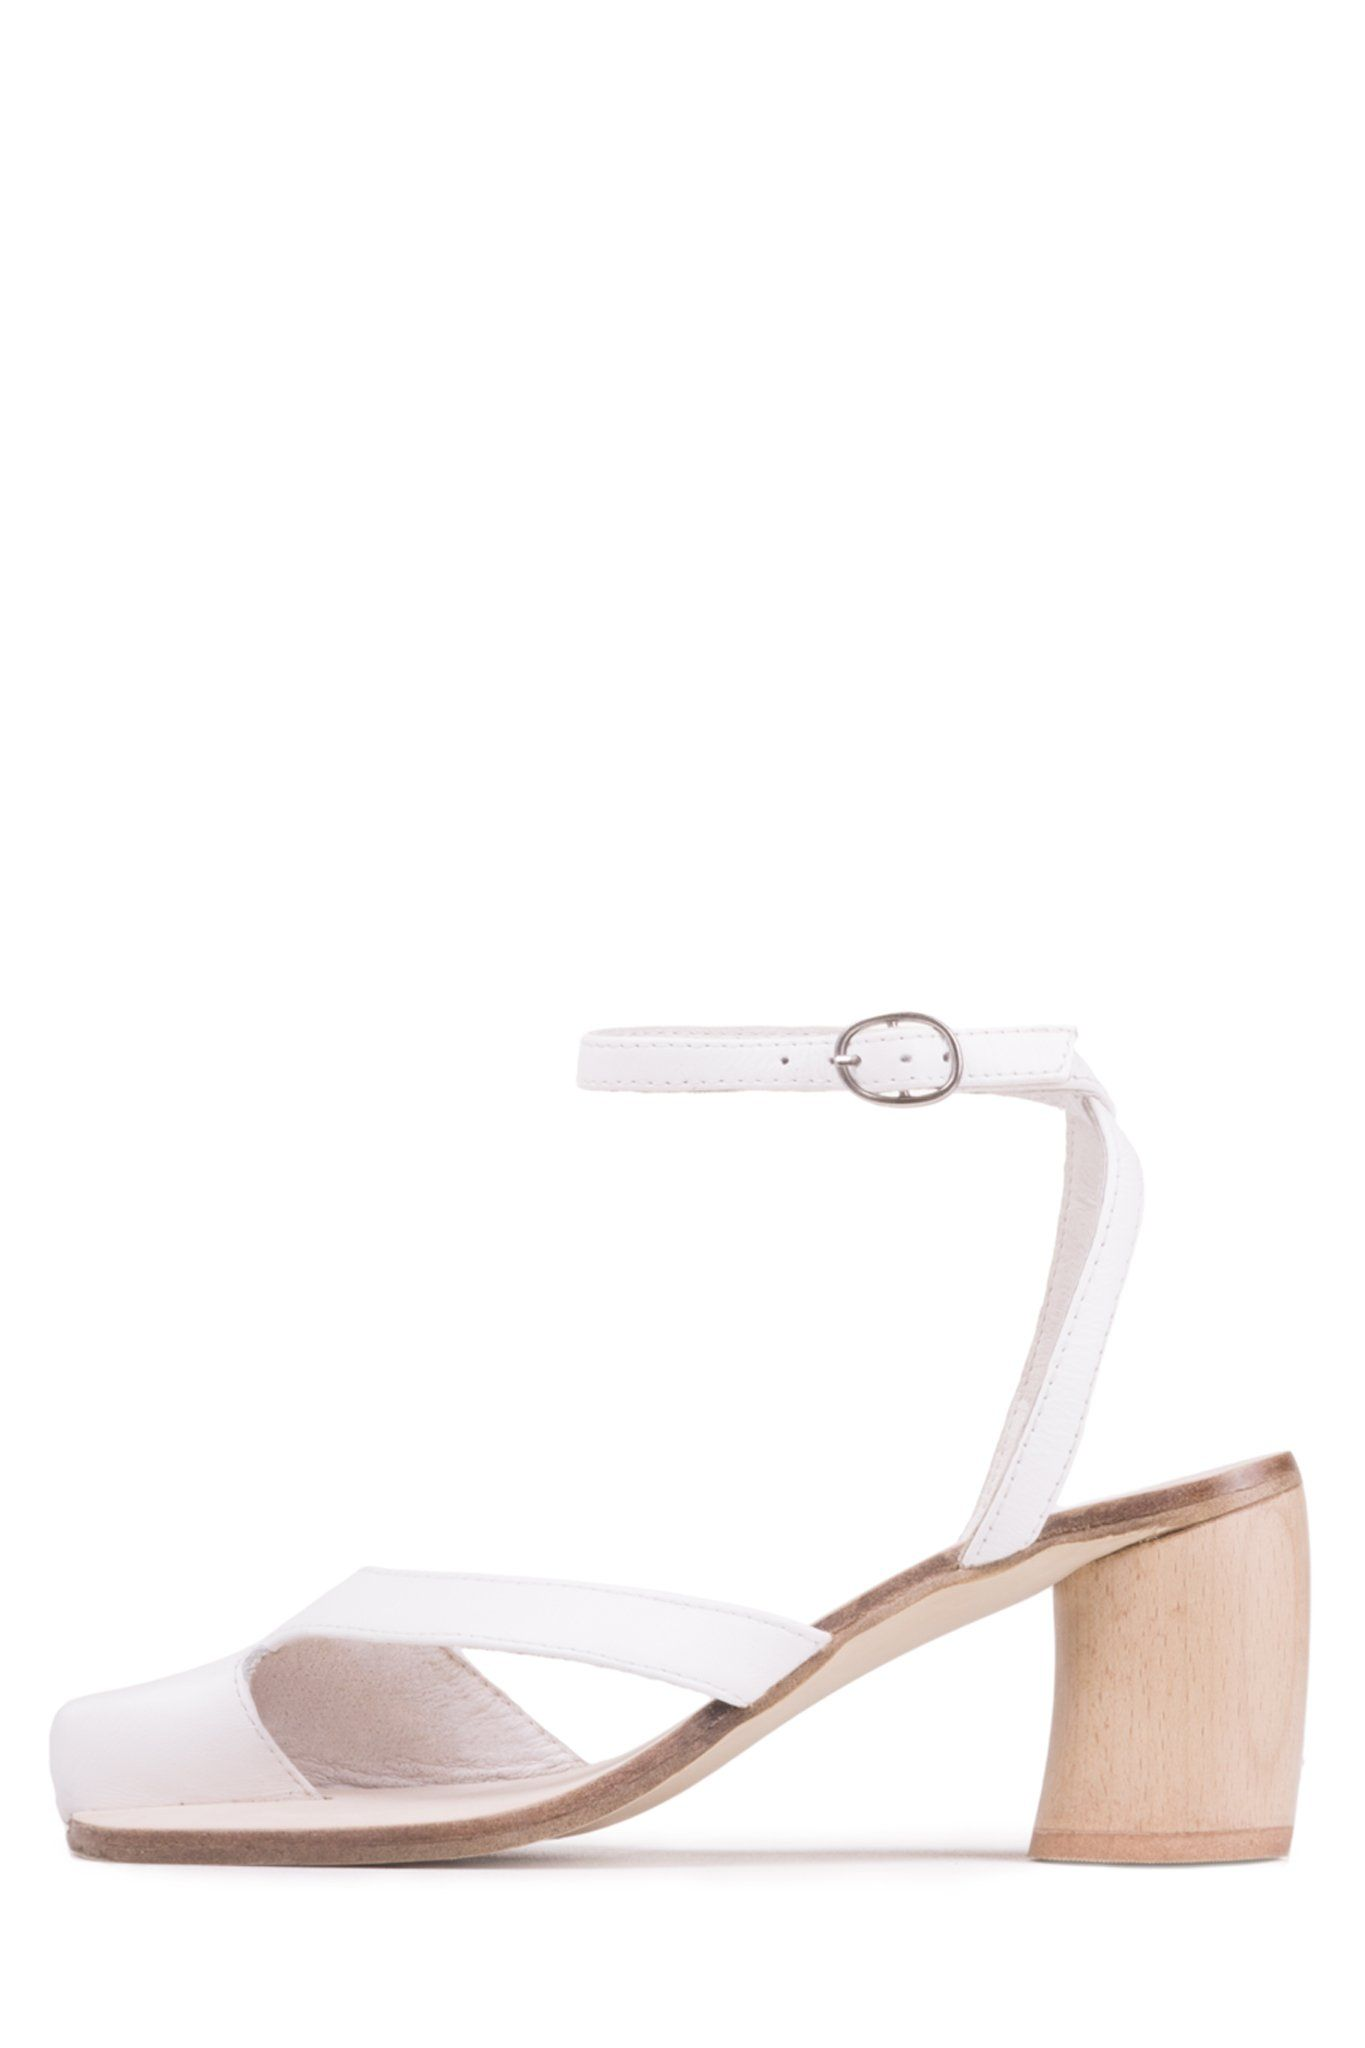 b2daf7cf105 Ankle strap sandal with rounded heel. - Fits true to size - Measurements  taken from size 6 - 2.75